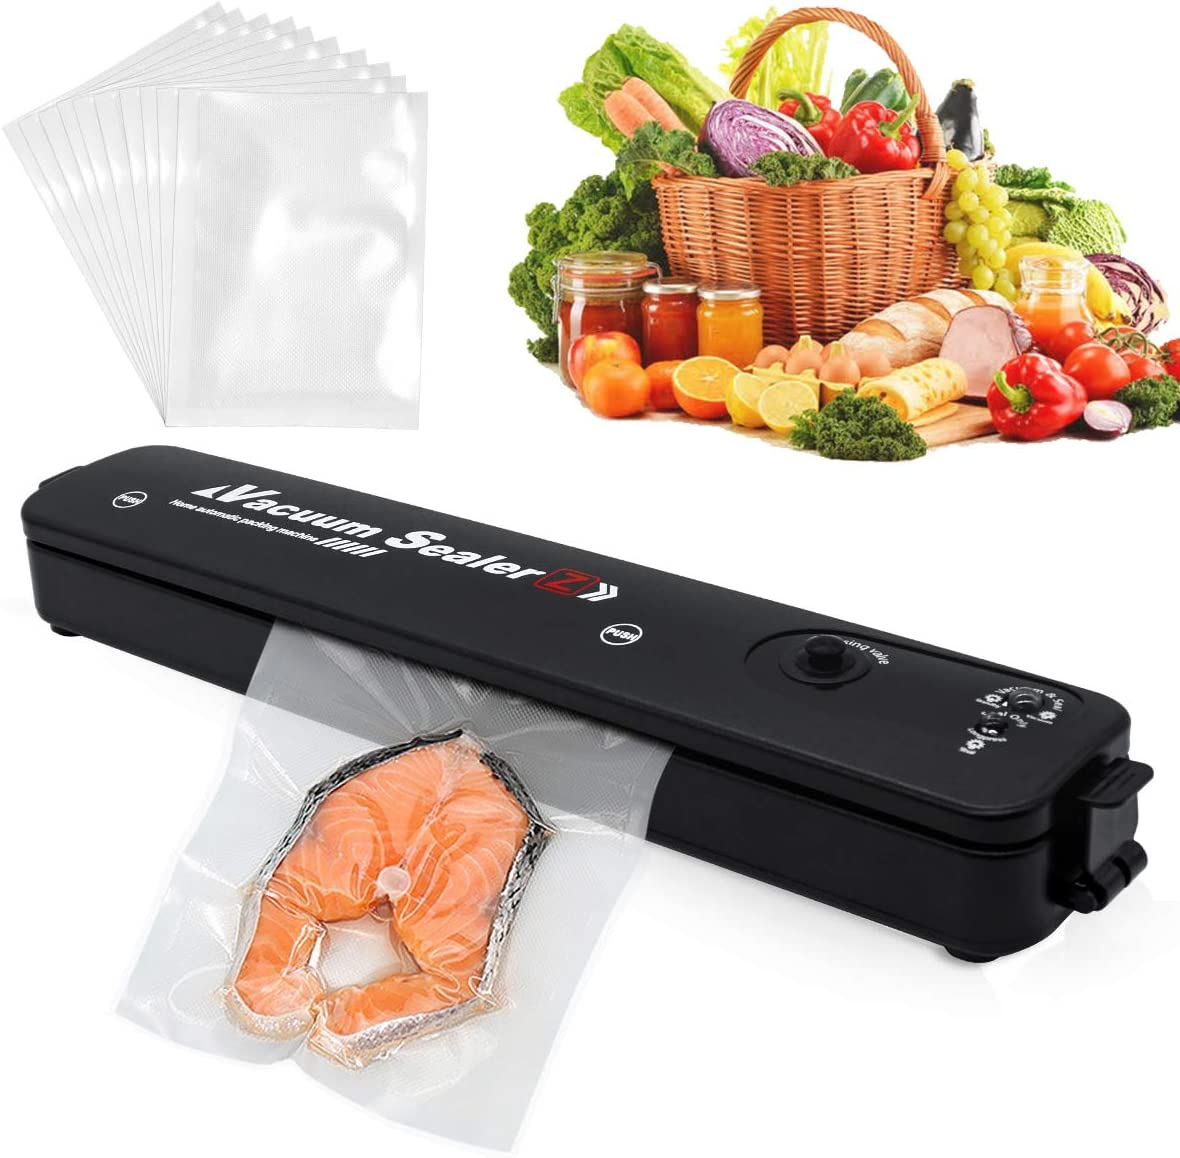 Food Saver Vacuum Sealer Machine, Vacuum Sealer Machine with 10 Sealing Bags, One-Touch Automatic Vacuum Sealing Machine for Dry And Moist Food Fresh Preservation with Led Indicator Lights